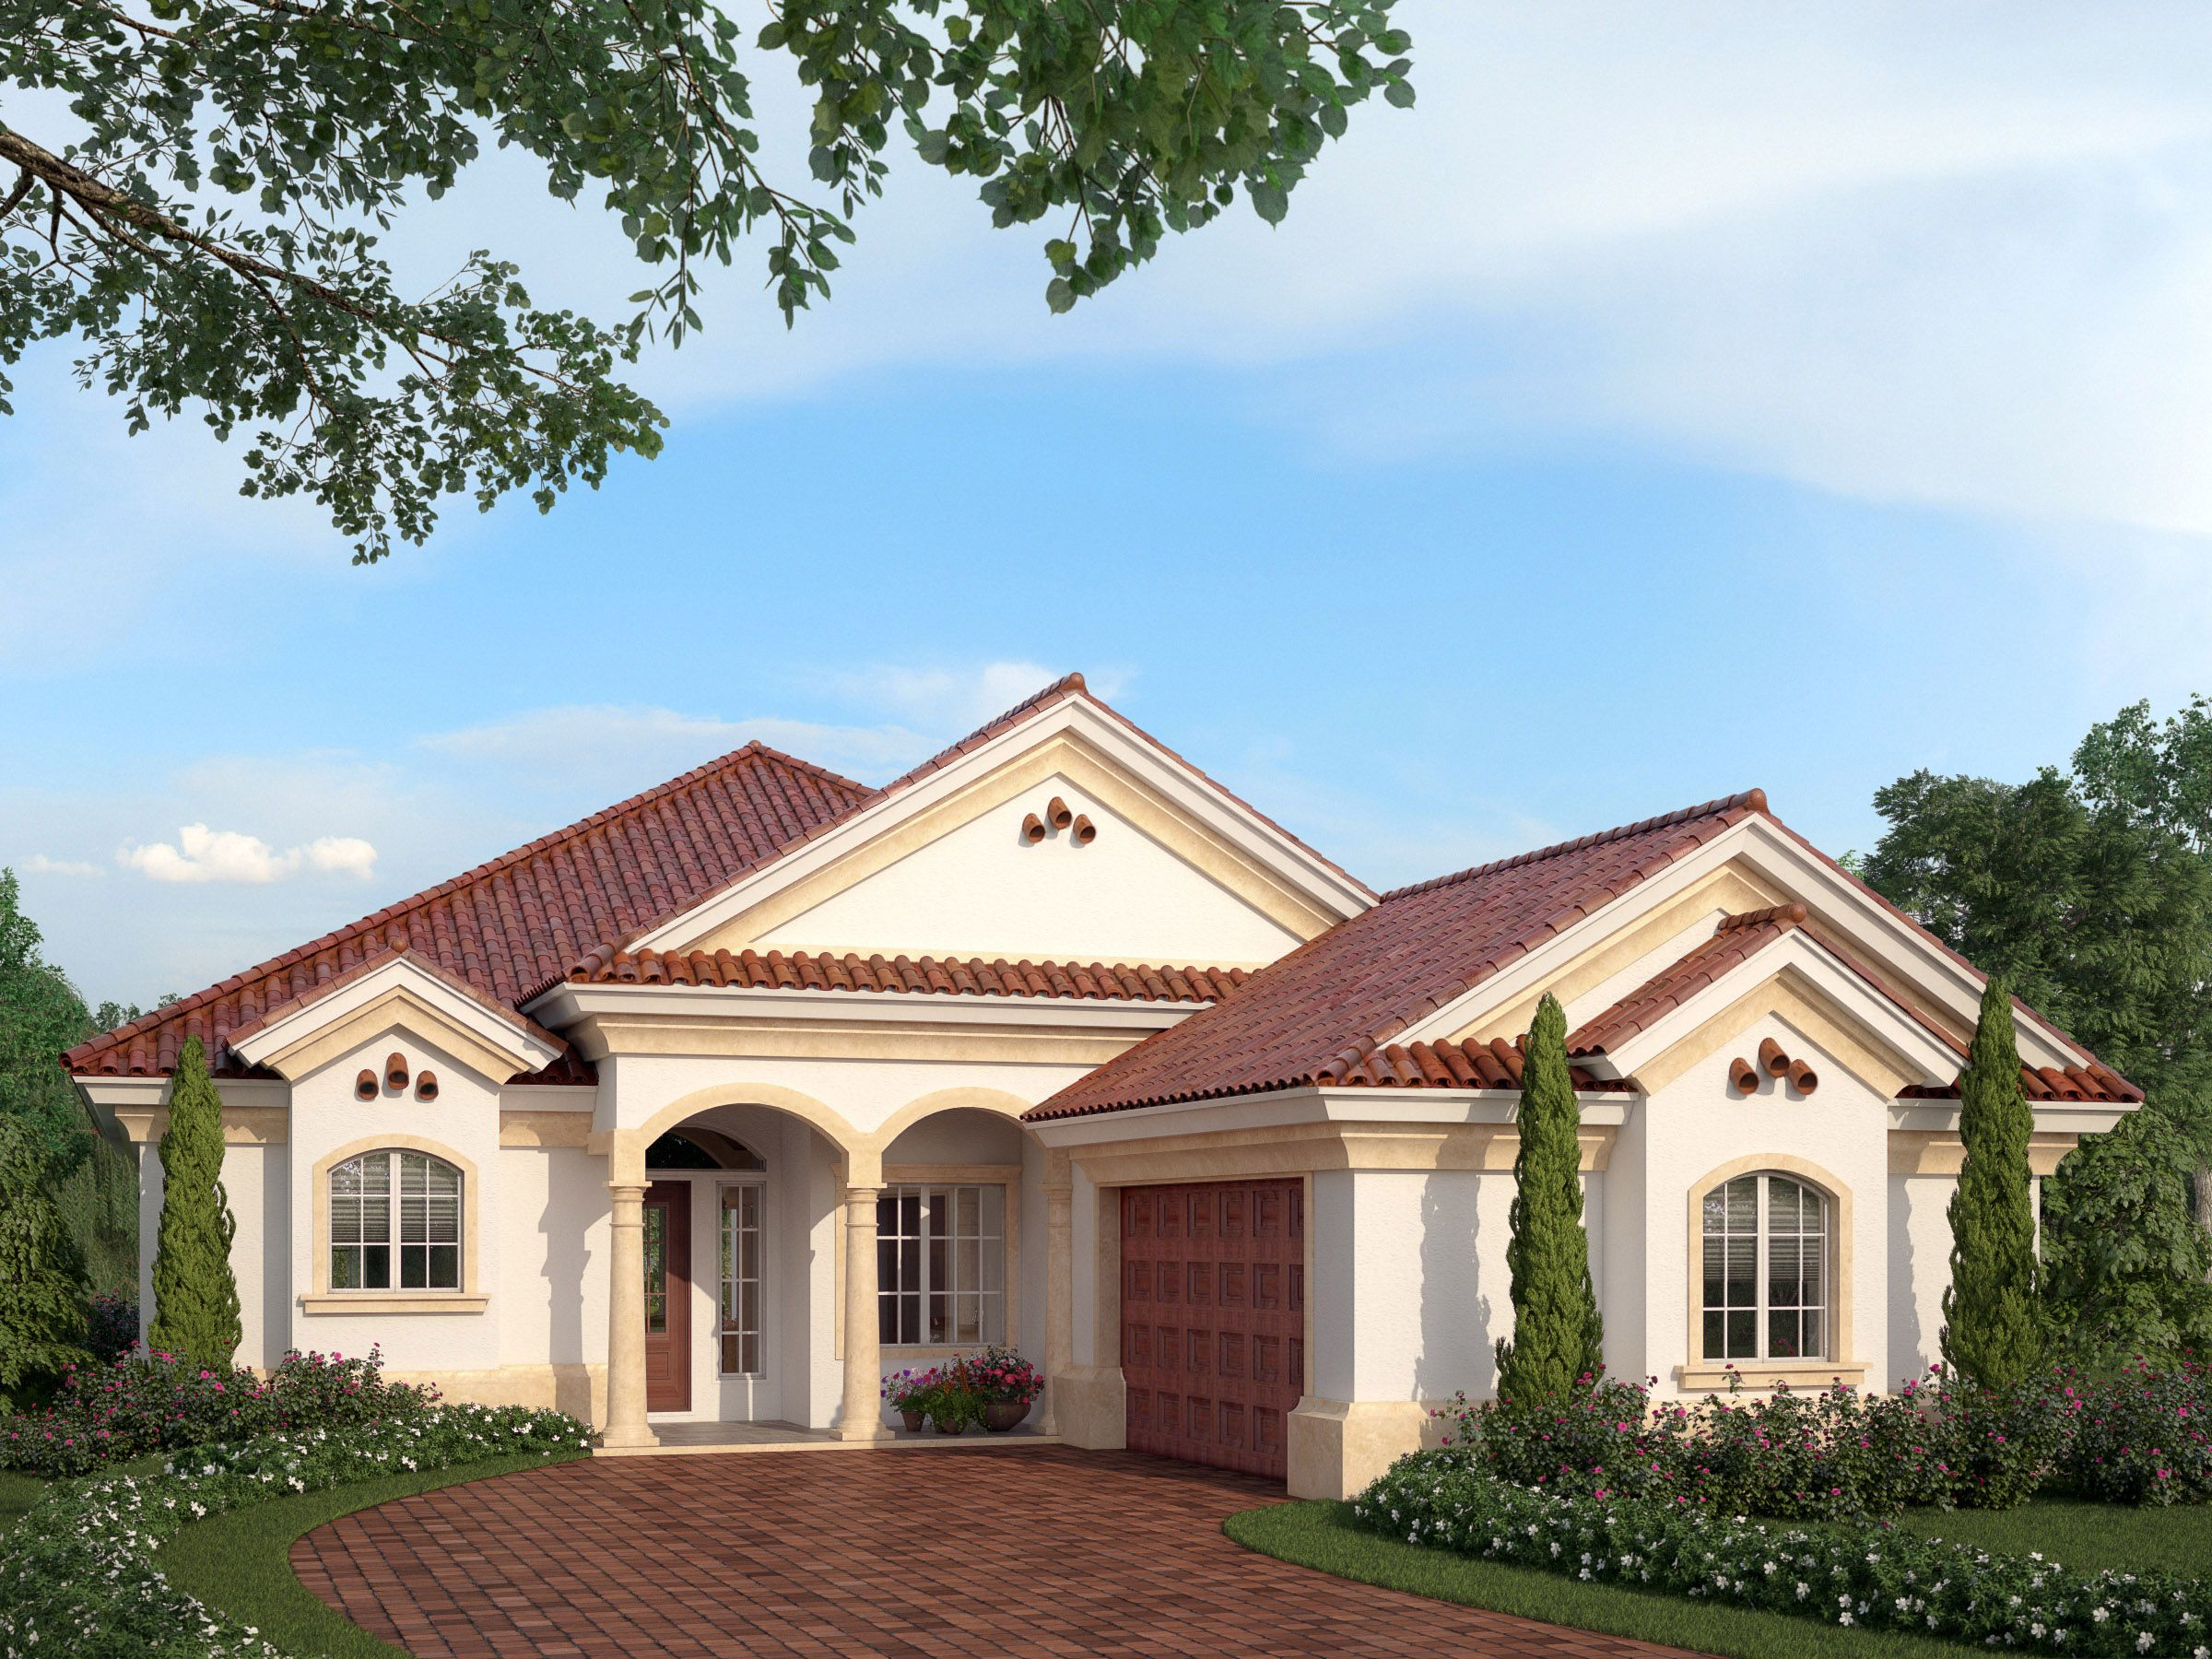 plan 33029zr: 3 bed energy efficient home plan with options